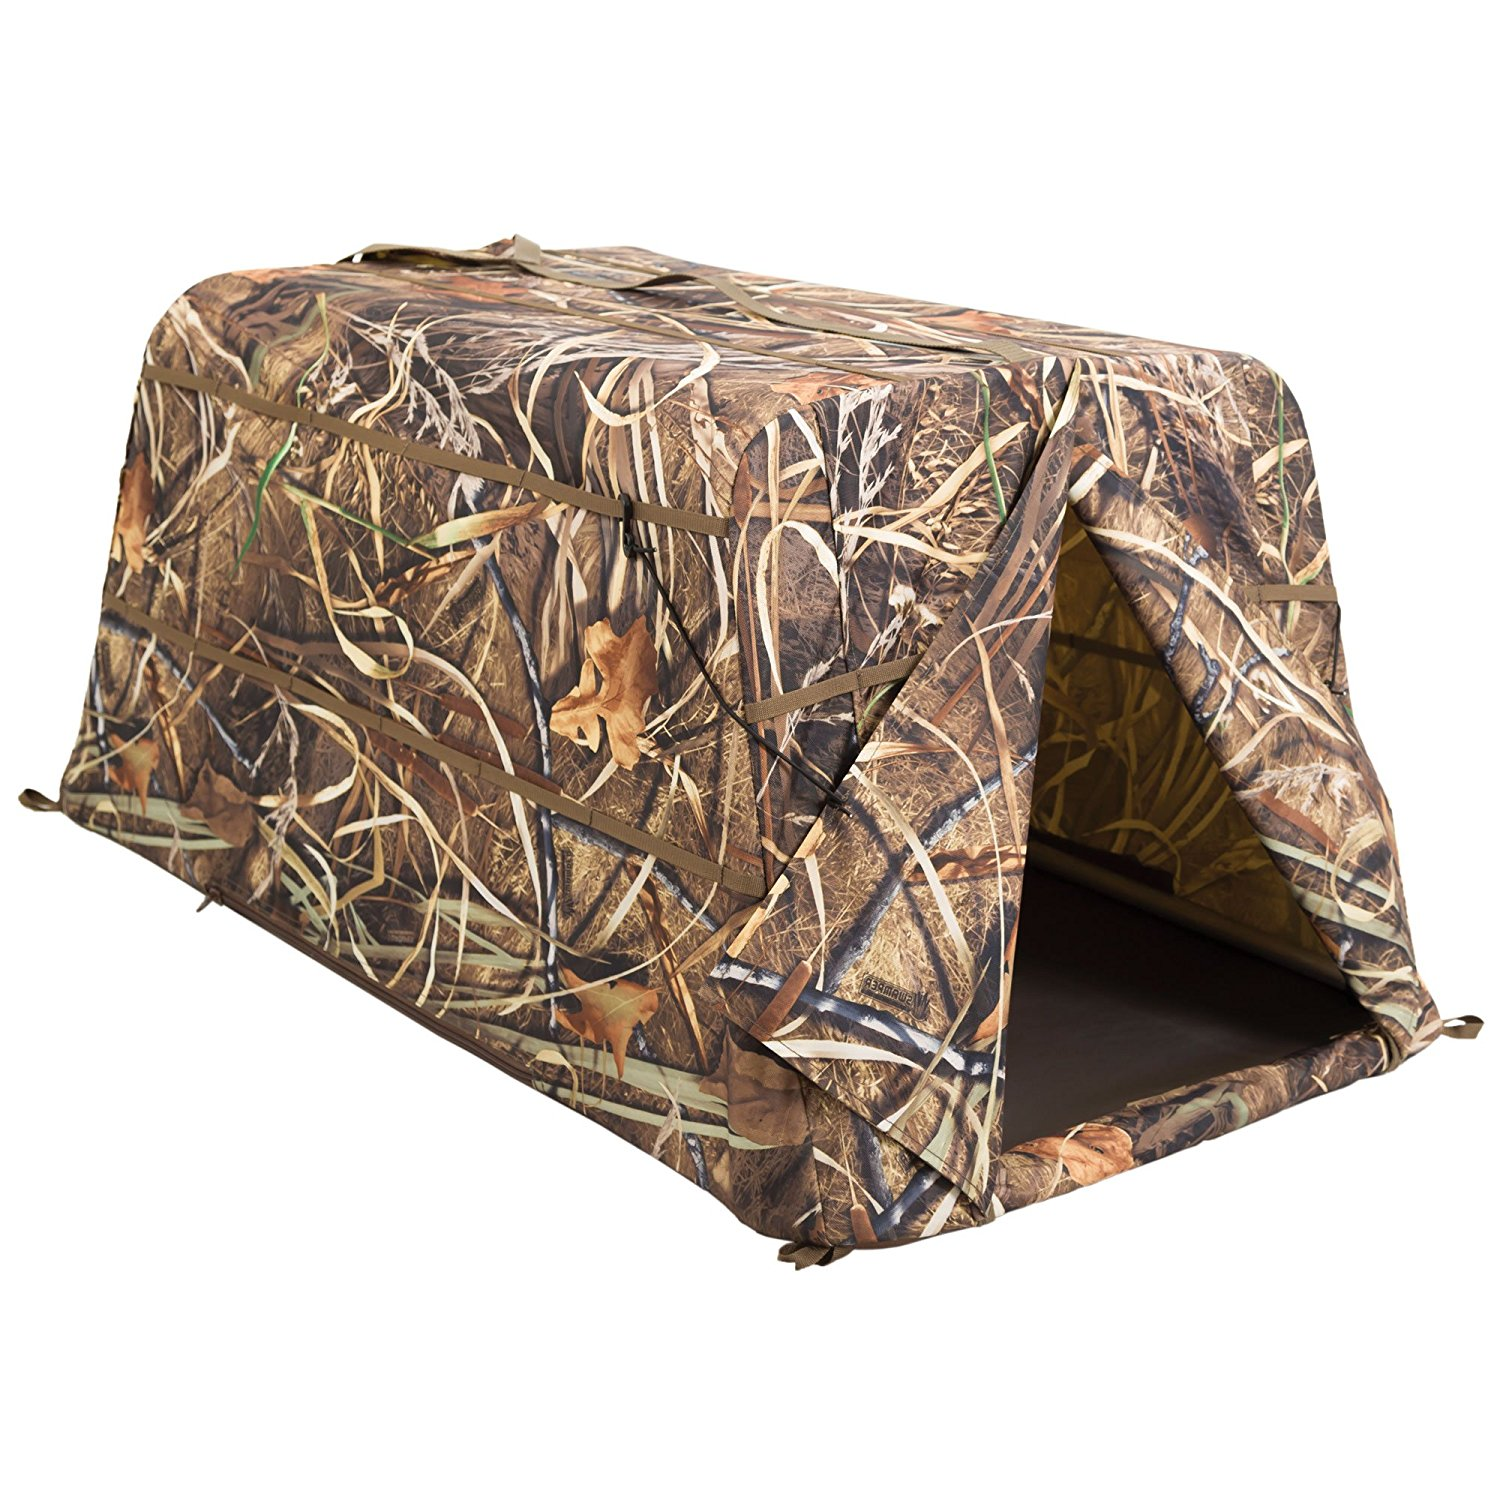 hunting ground com blind doghouse ameristep person outdoors sports realtree dp blinds amazon